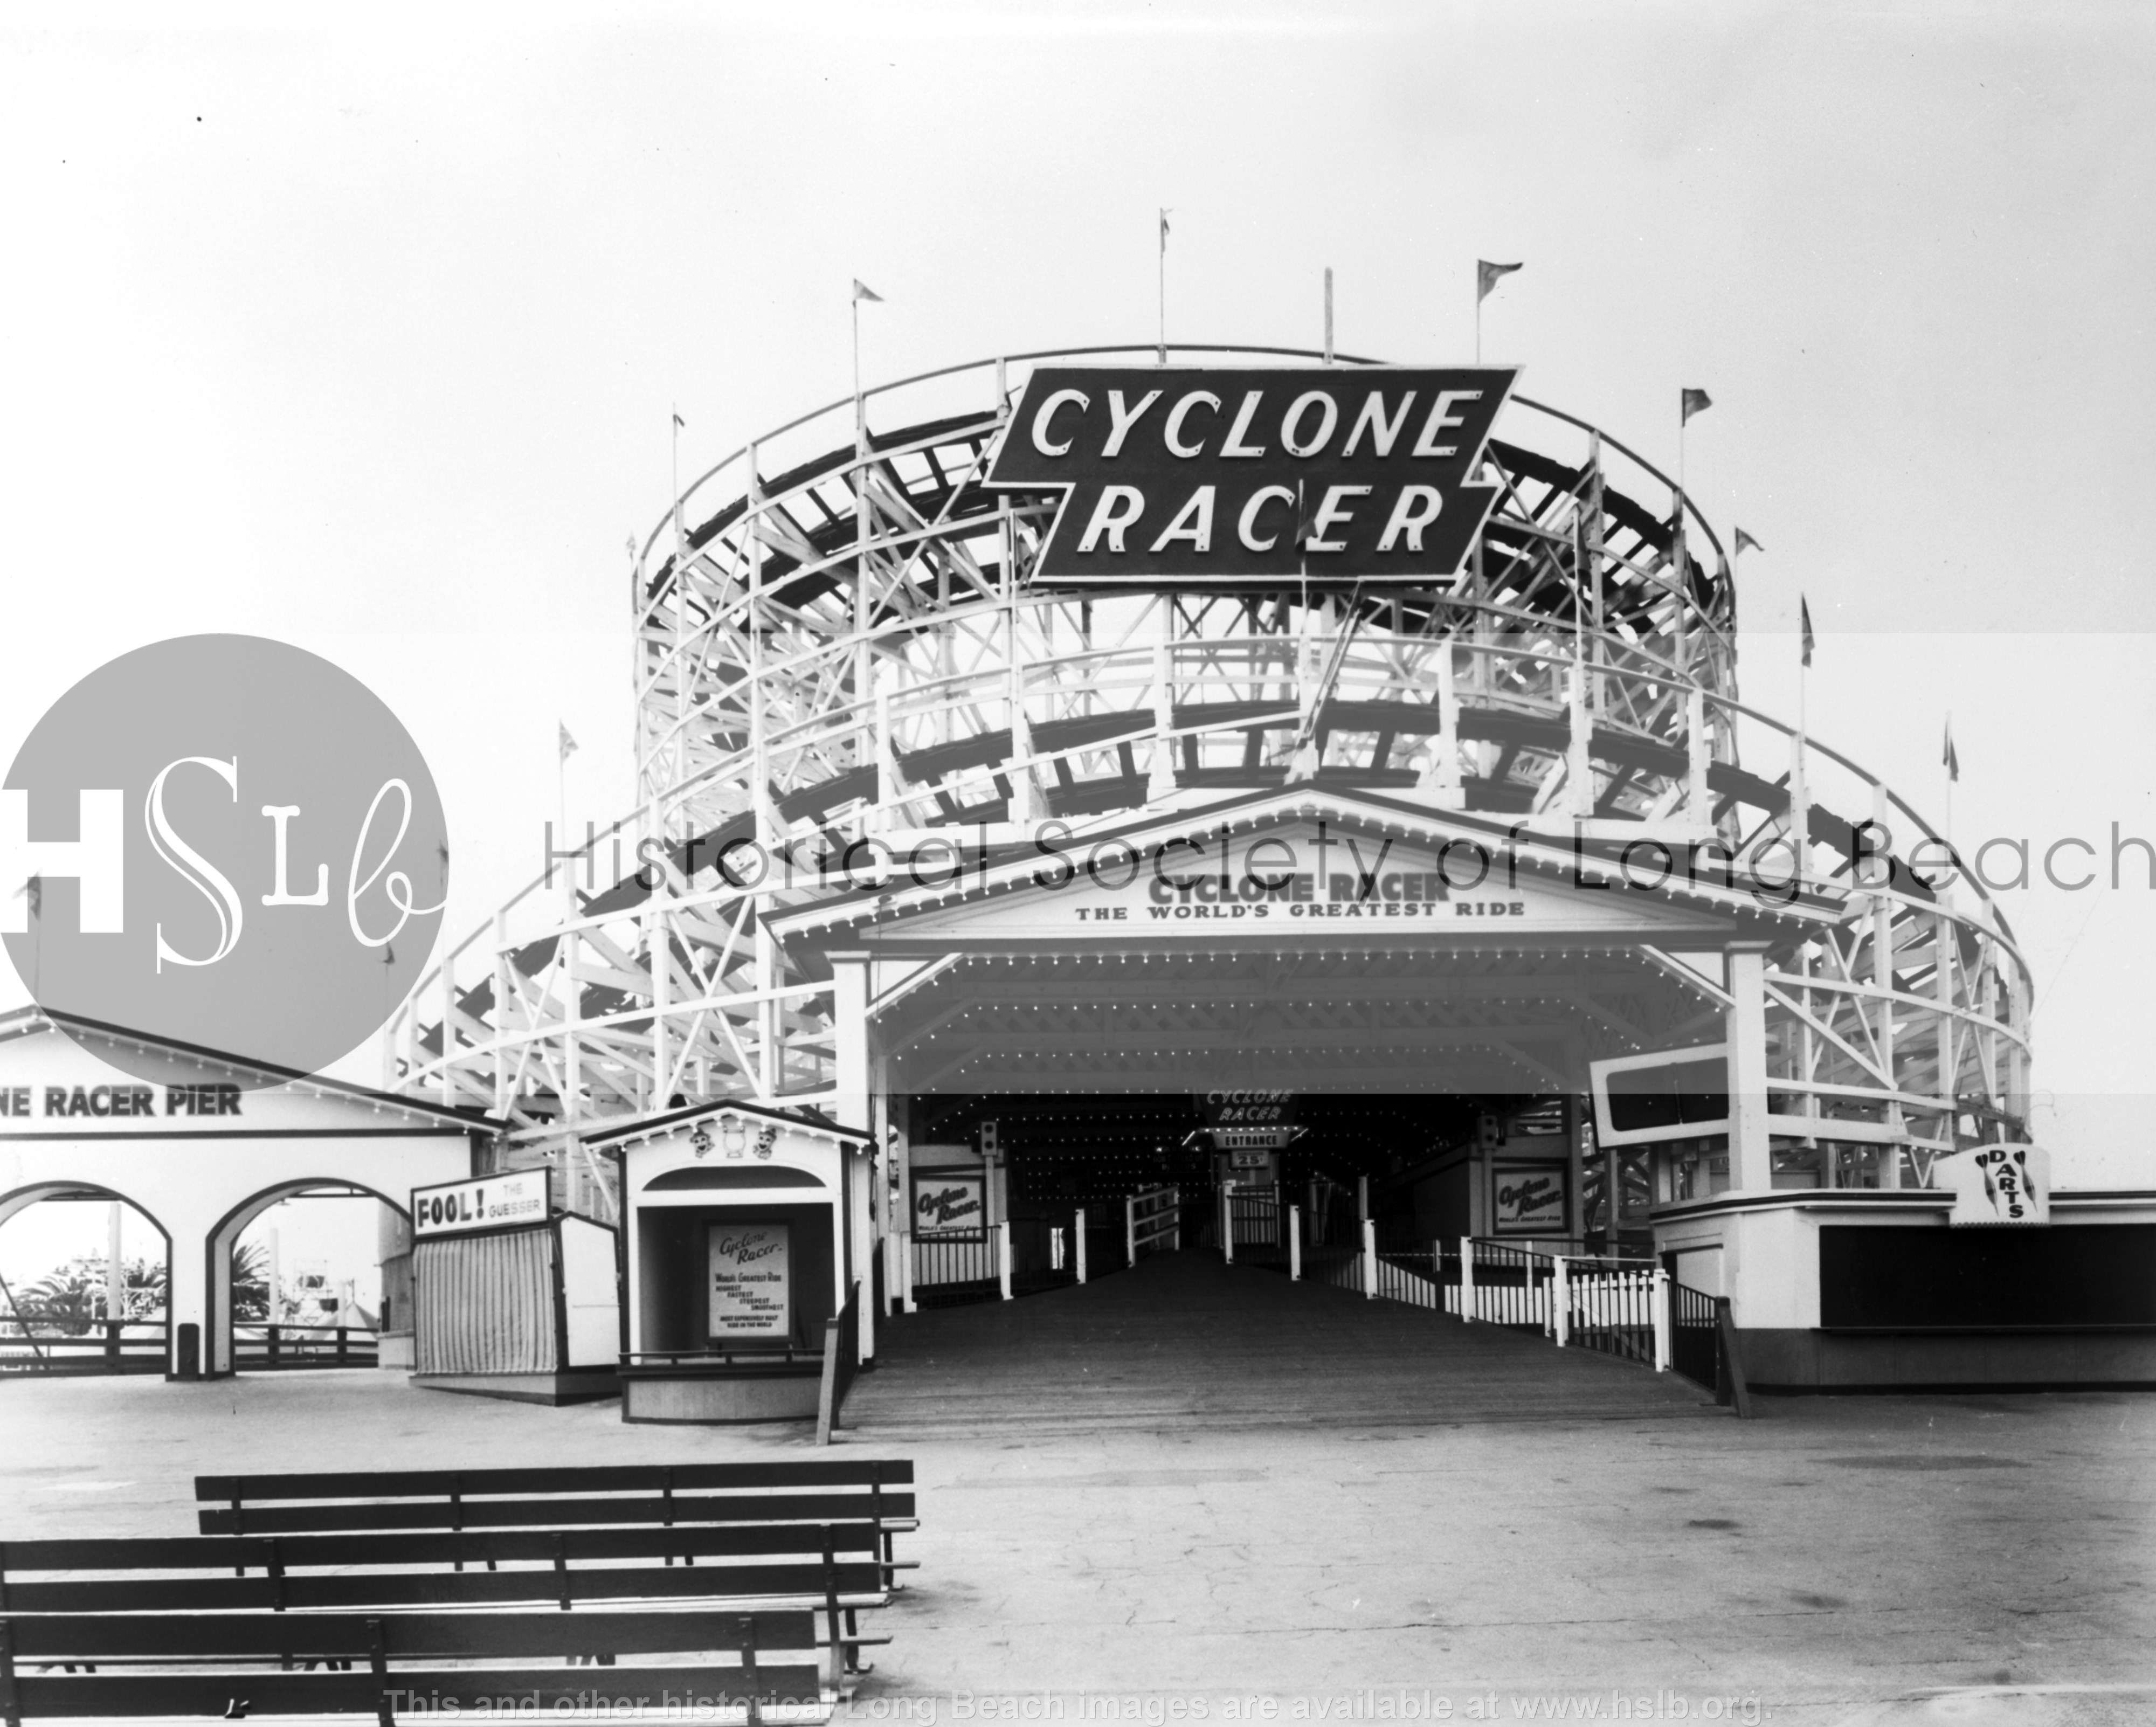 Cyclone Racer entrance, 1959 historical photo